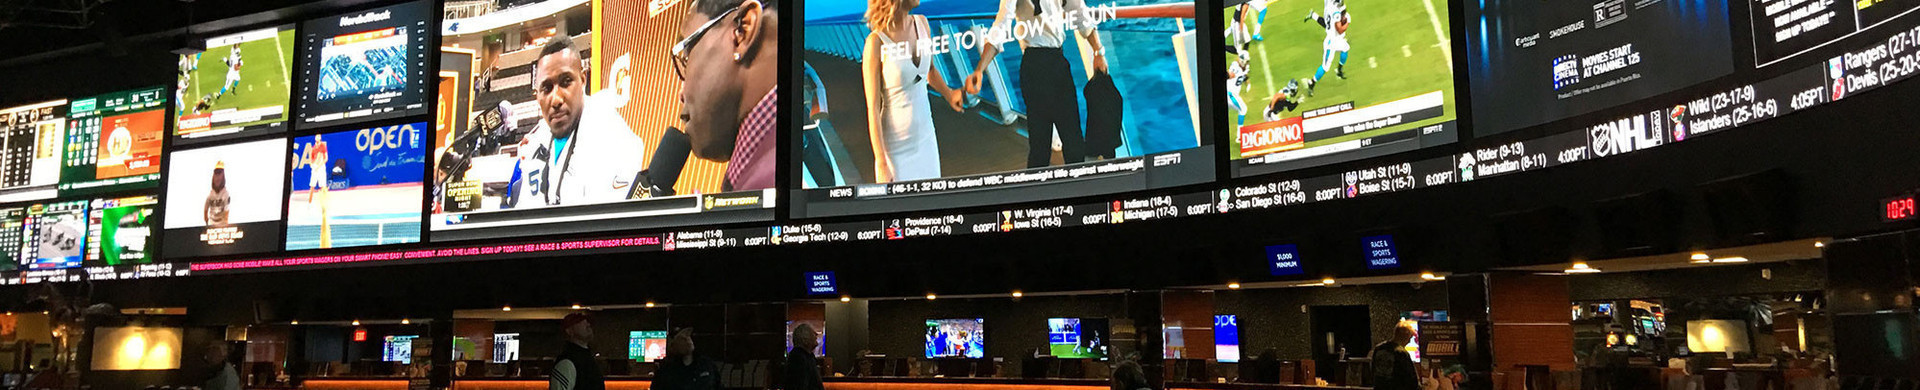 Win Loss Statement Requests for our Las Vegas Hotel and Casino | Race & Sports Book